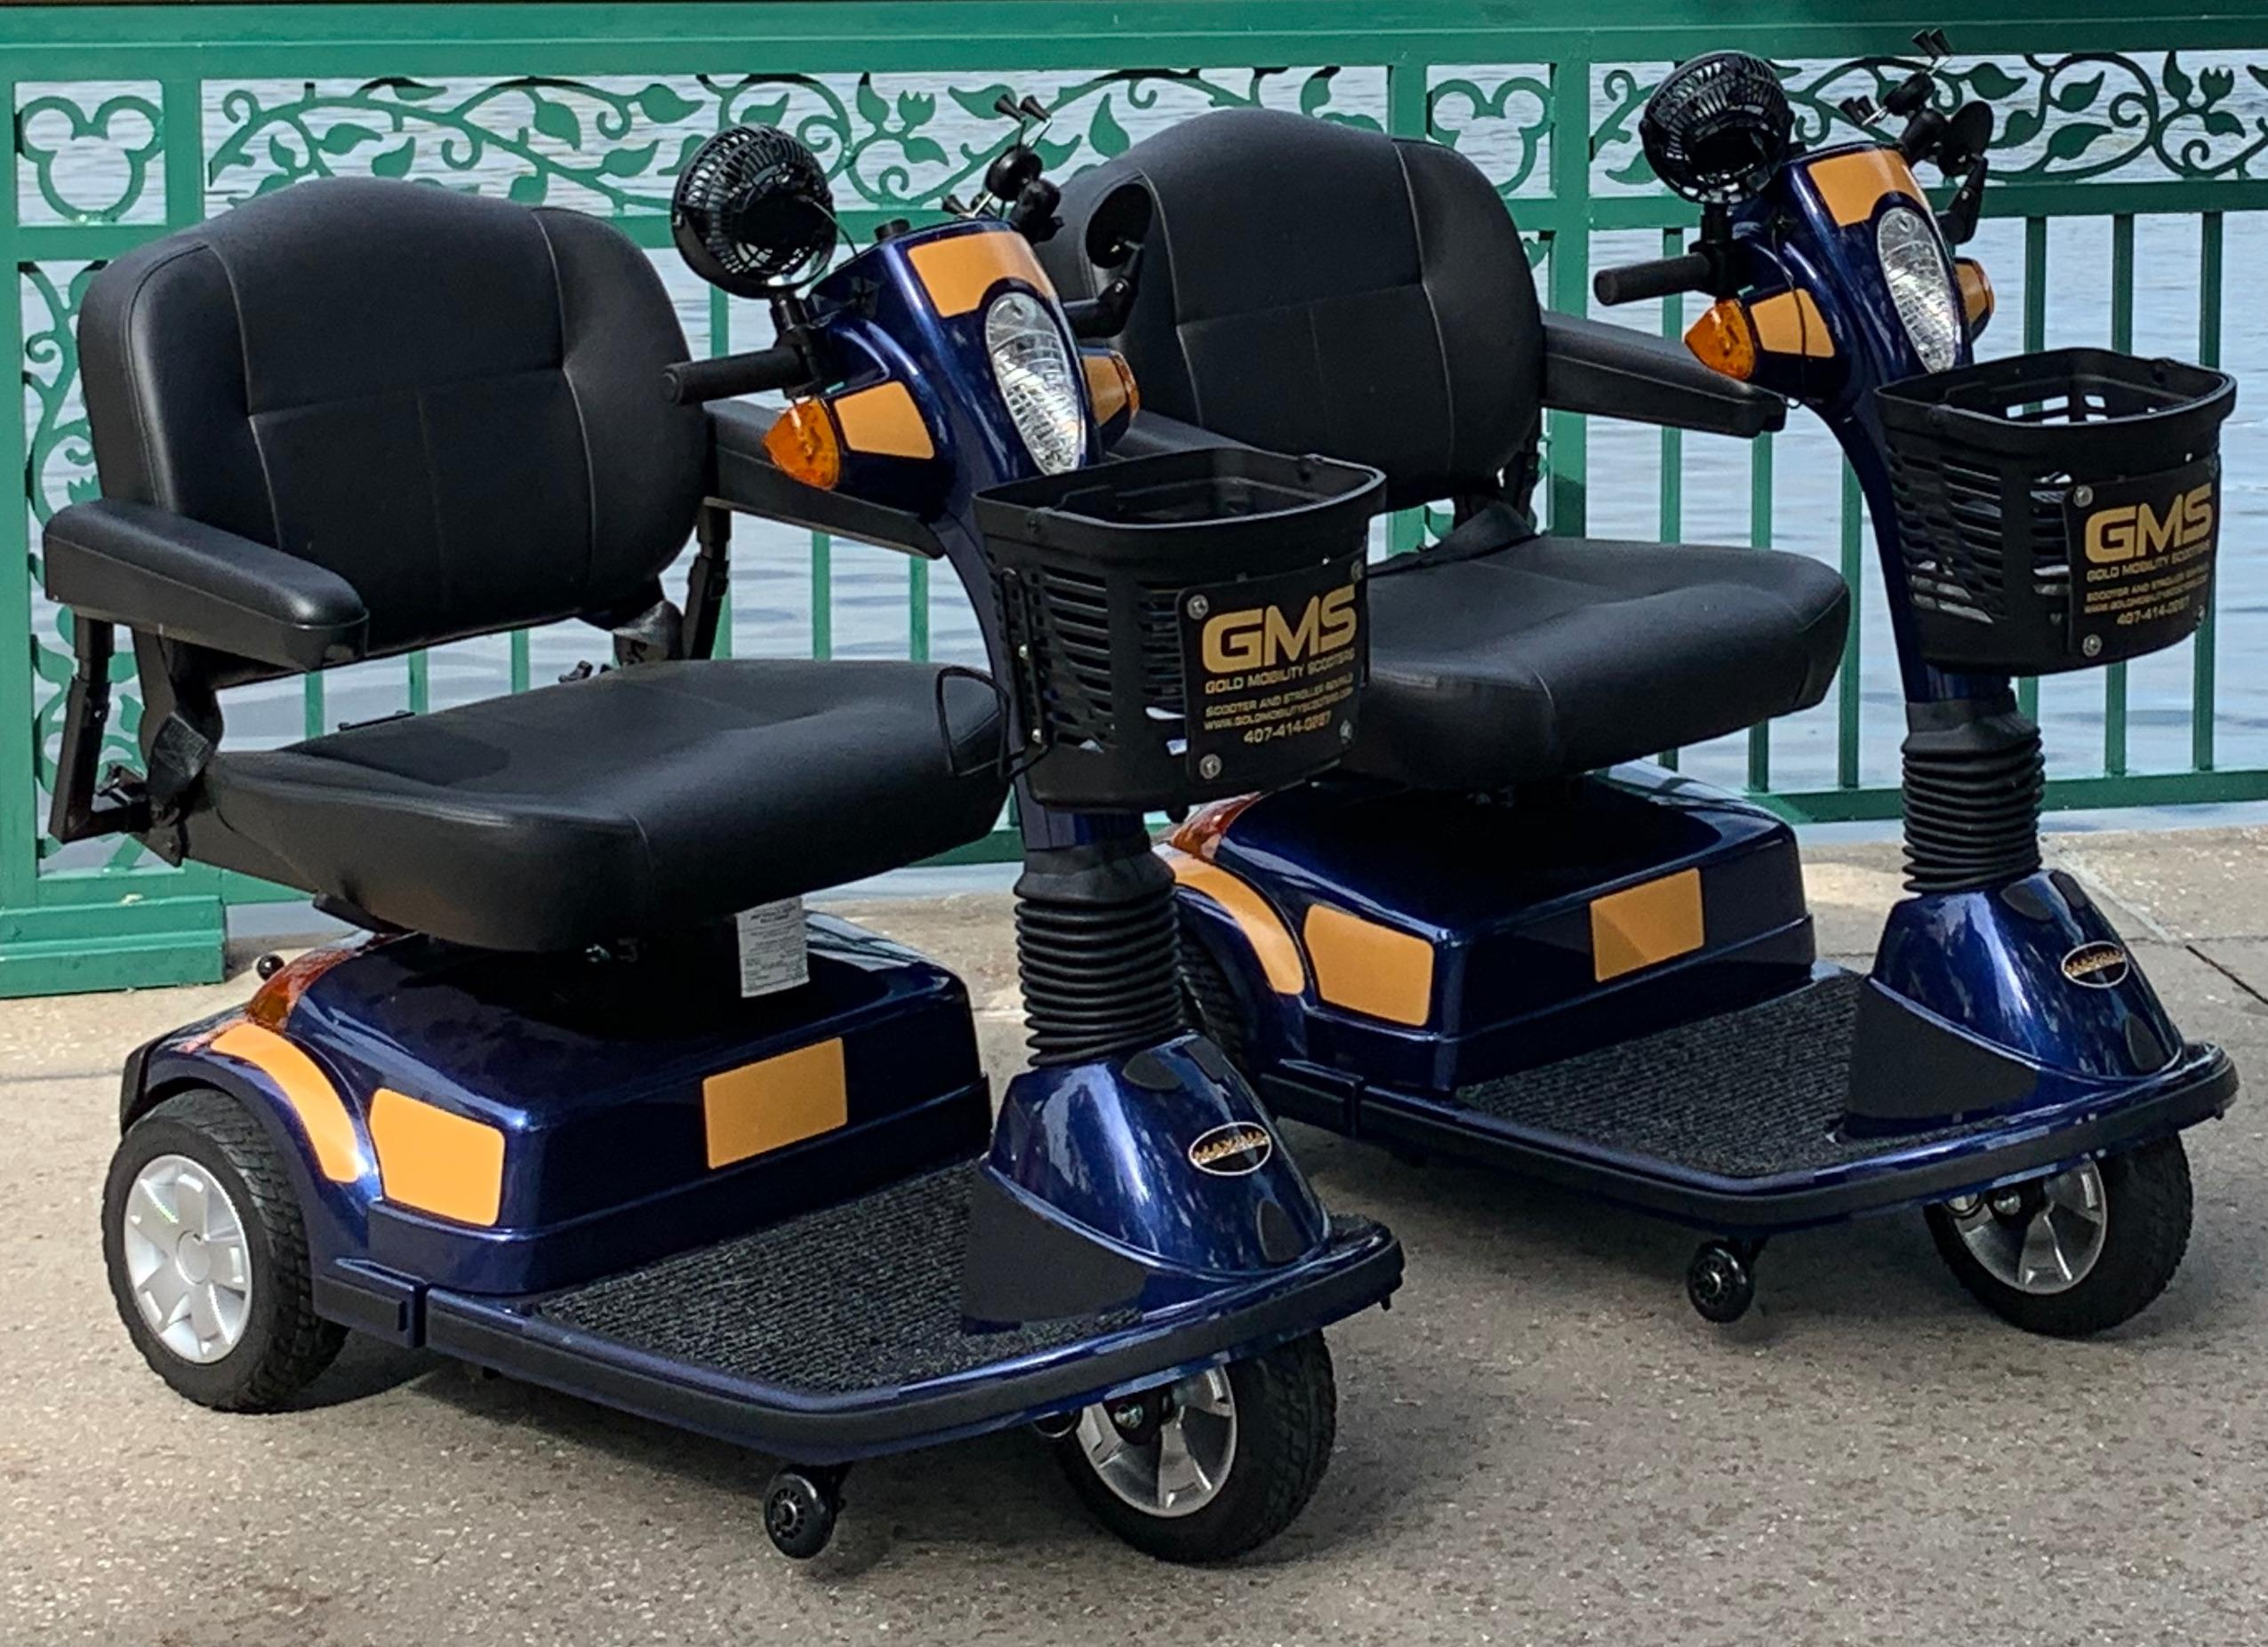 Pride Maxima scooter rental by Gold Mobility Scooters. The maxima scooter is a 500LB capacity mobility scooter. GMS is a 5 star rated mobility scooter rental company for Orlando area and for Theme Park guests. We offer free delivery to most all hotels and Resorts in the Central Florida area. Best apples for apples rental prices, premium brand new mobility scooters for rent, Free Delivery and Pickup, Free Damage Waver, Free Accessories, and Custom upgrades. 5 star rated scooter rental company. Scooter Rental info at goldmobilityscooters.com or Call us at 407-414-0287 No cancellation fee's or Change Fee's.